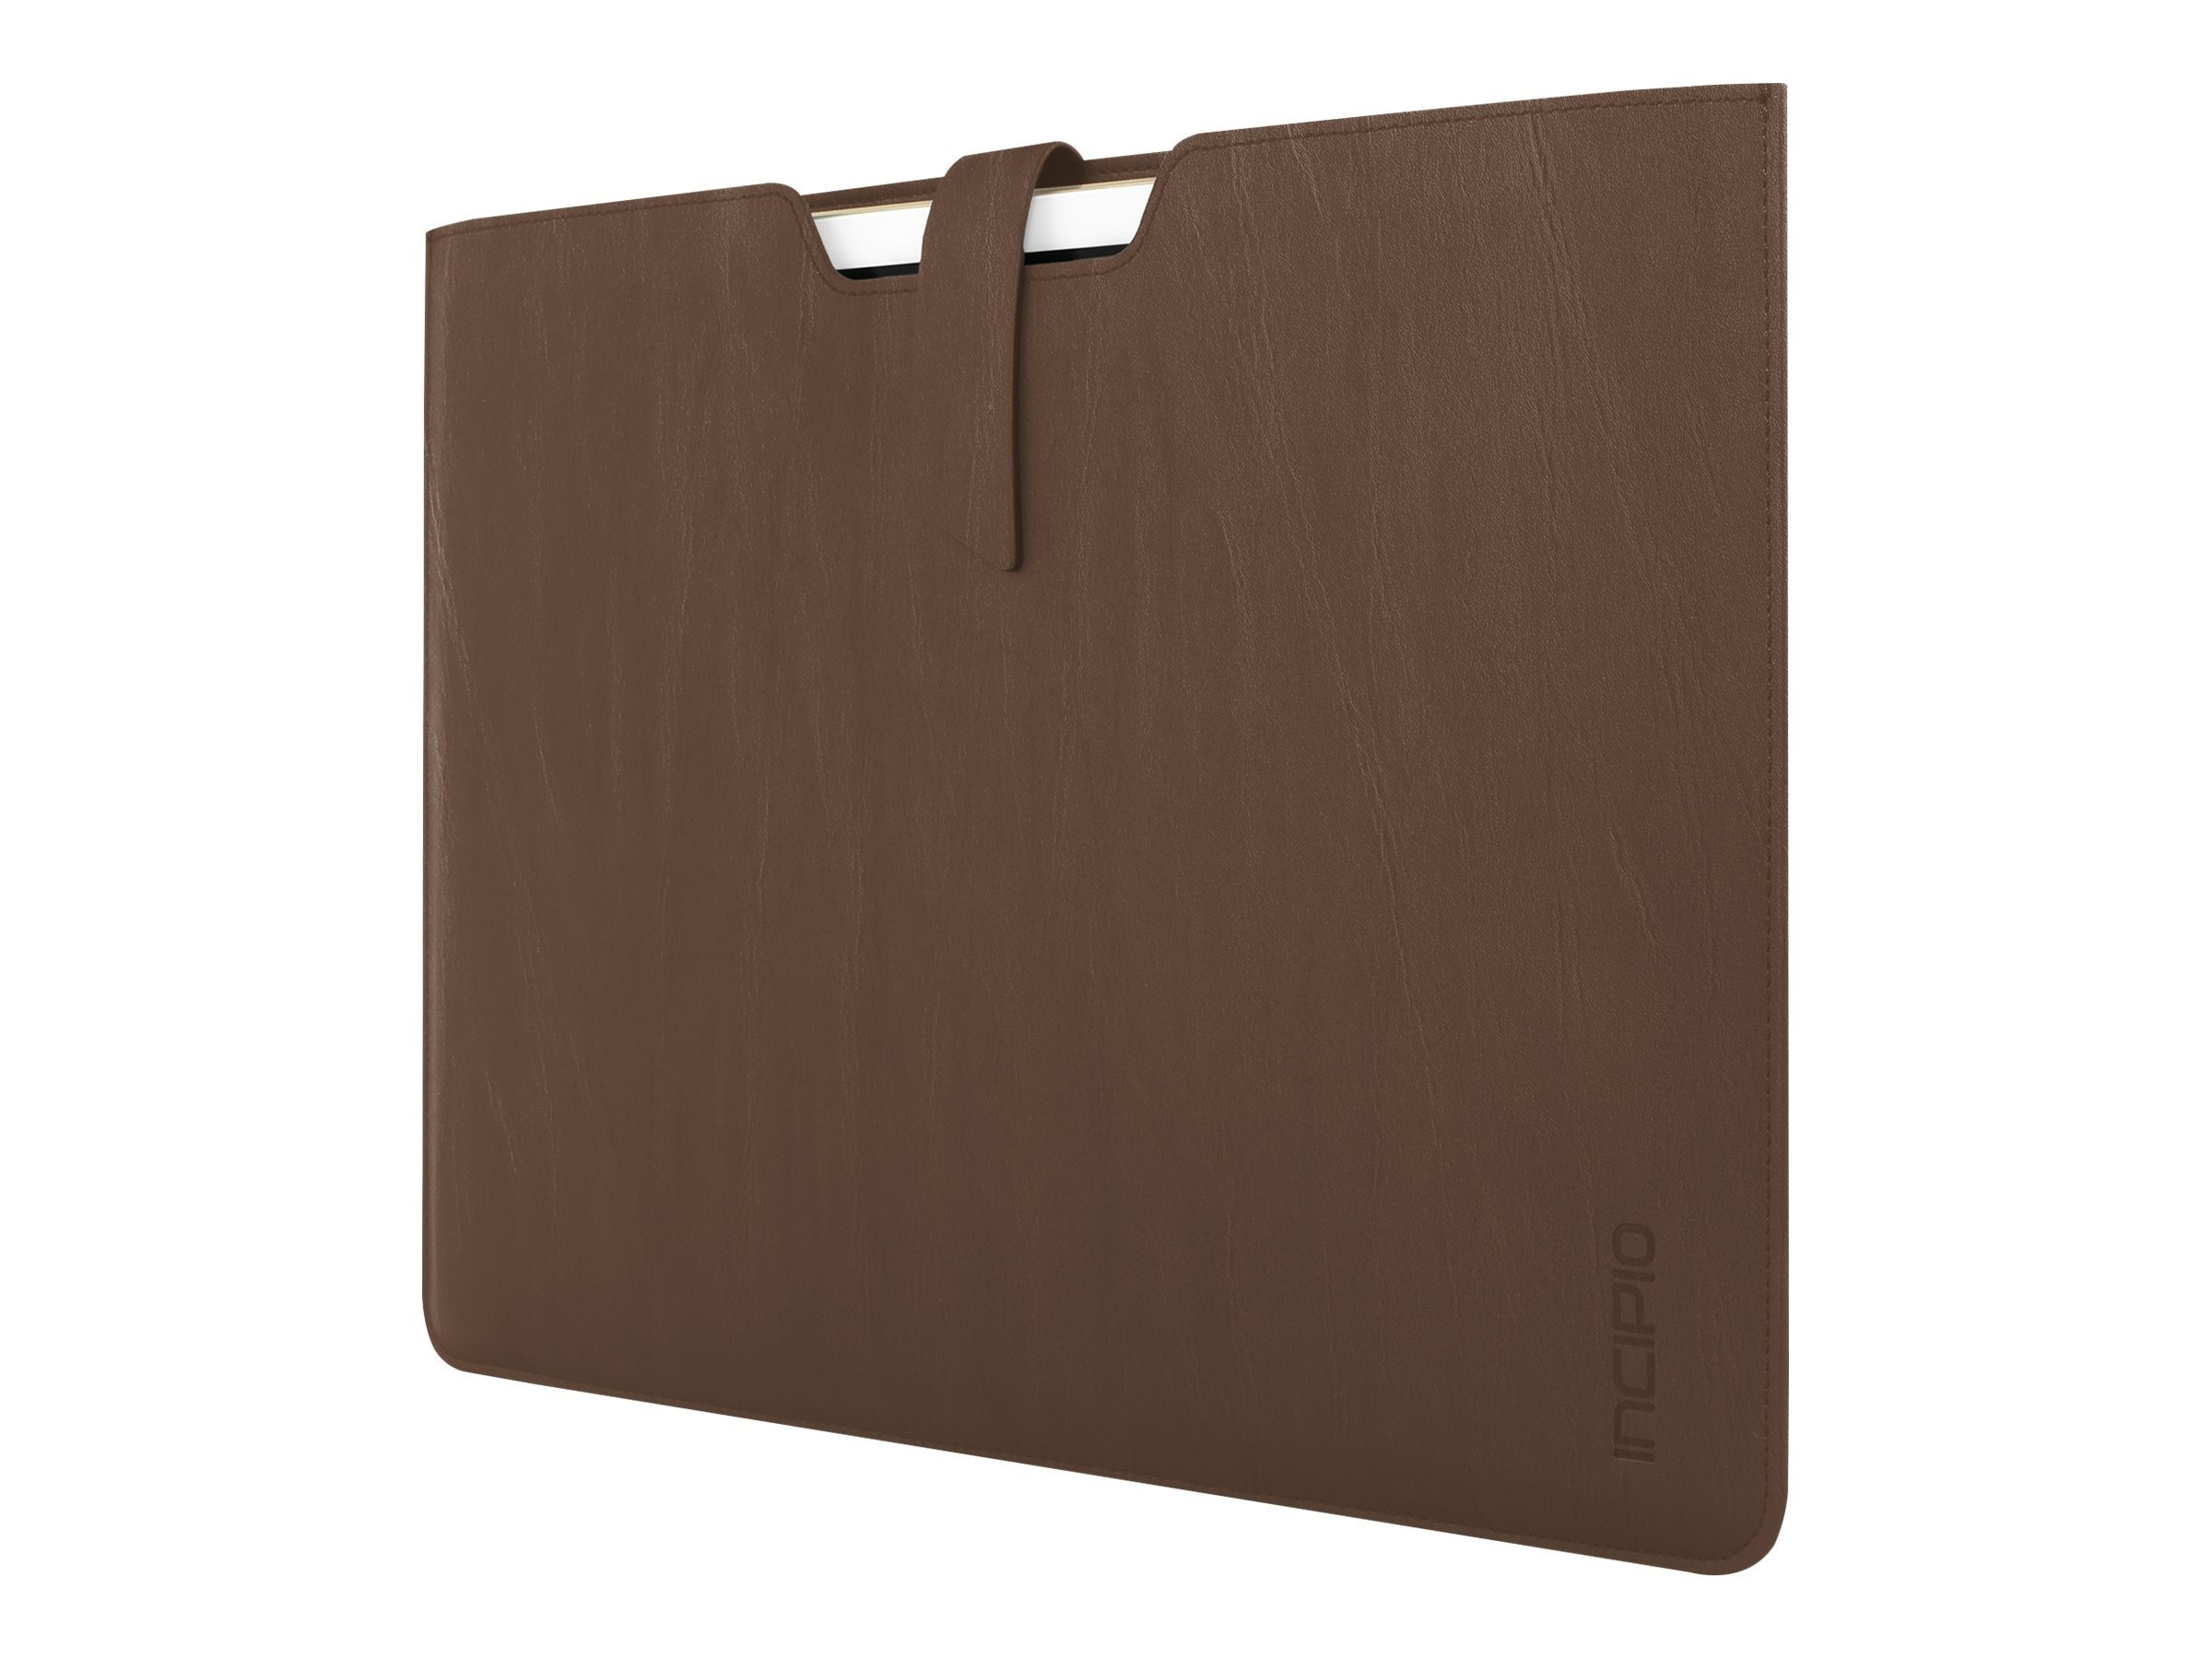 Incipio Lunde Slim Vegan Leather Sleeve for iPad Pro 12.9, Brown